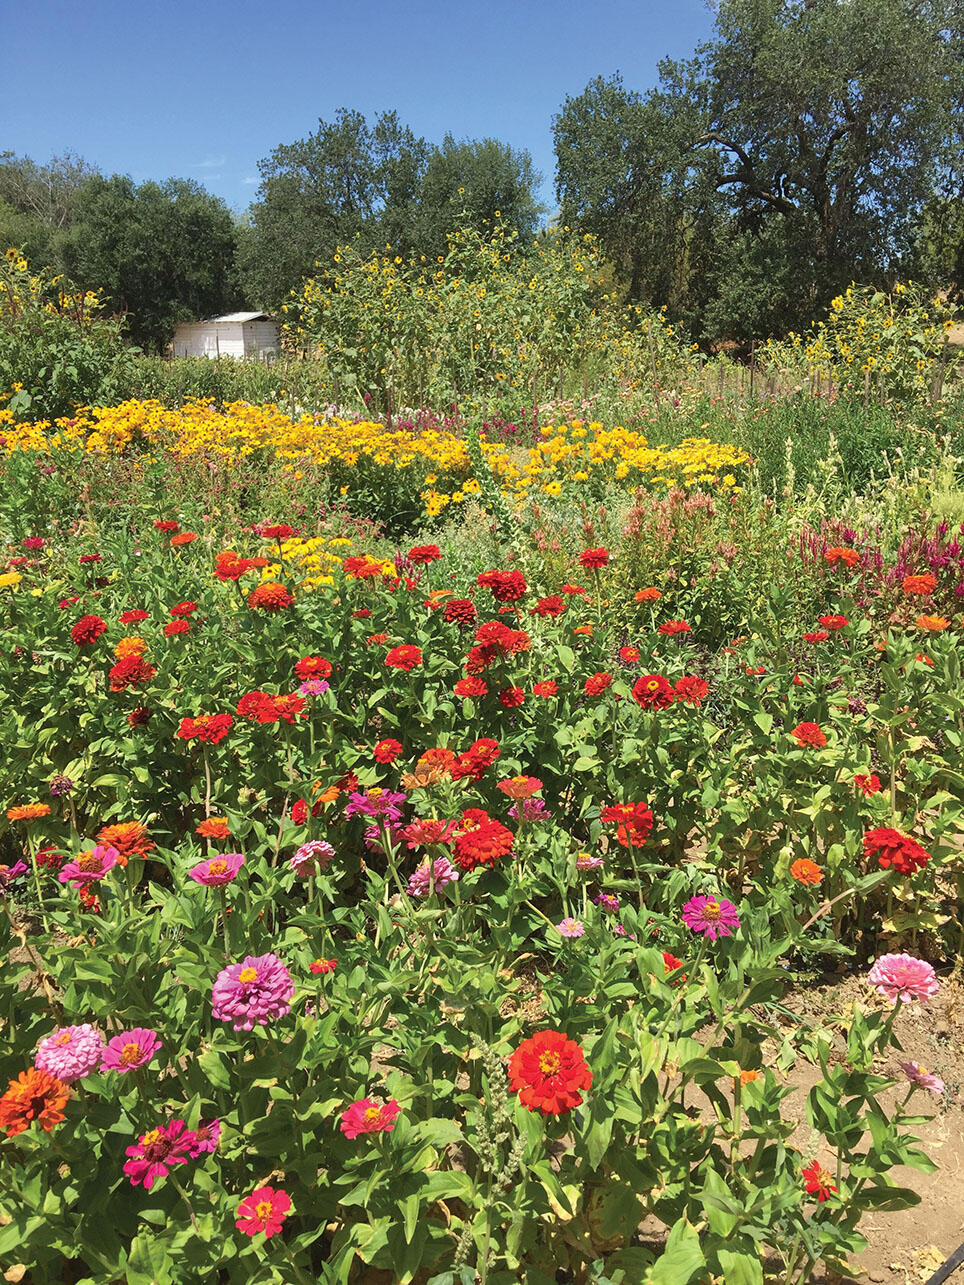 A colorful and diverse habitat garden provides an excellent environment for pollinating species. (Photo by Gordon Frankie.)